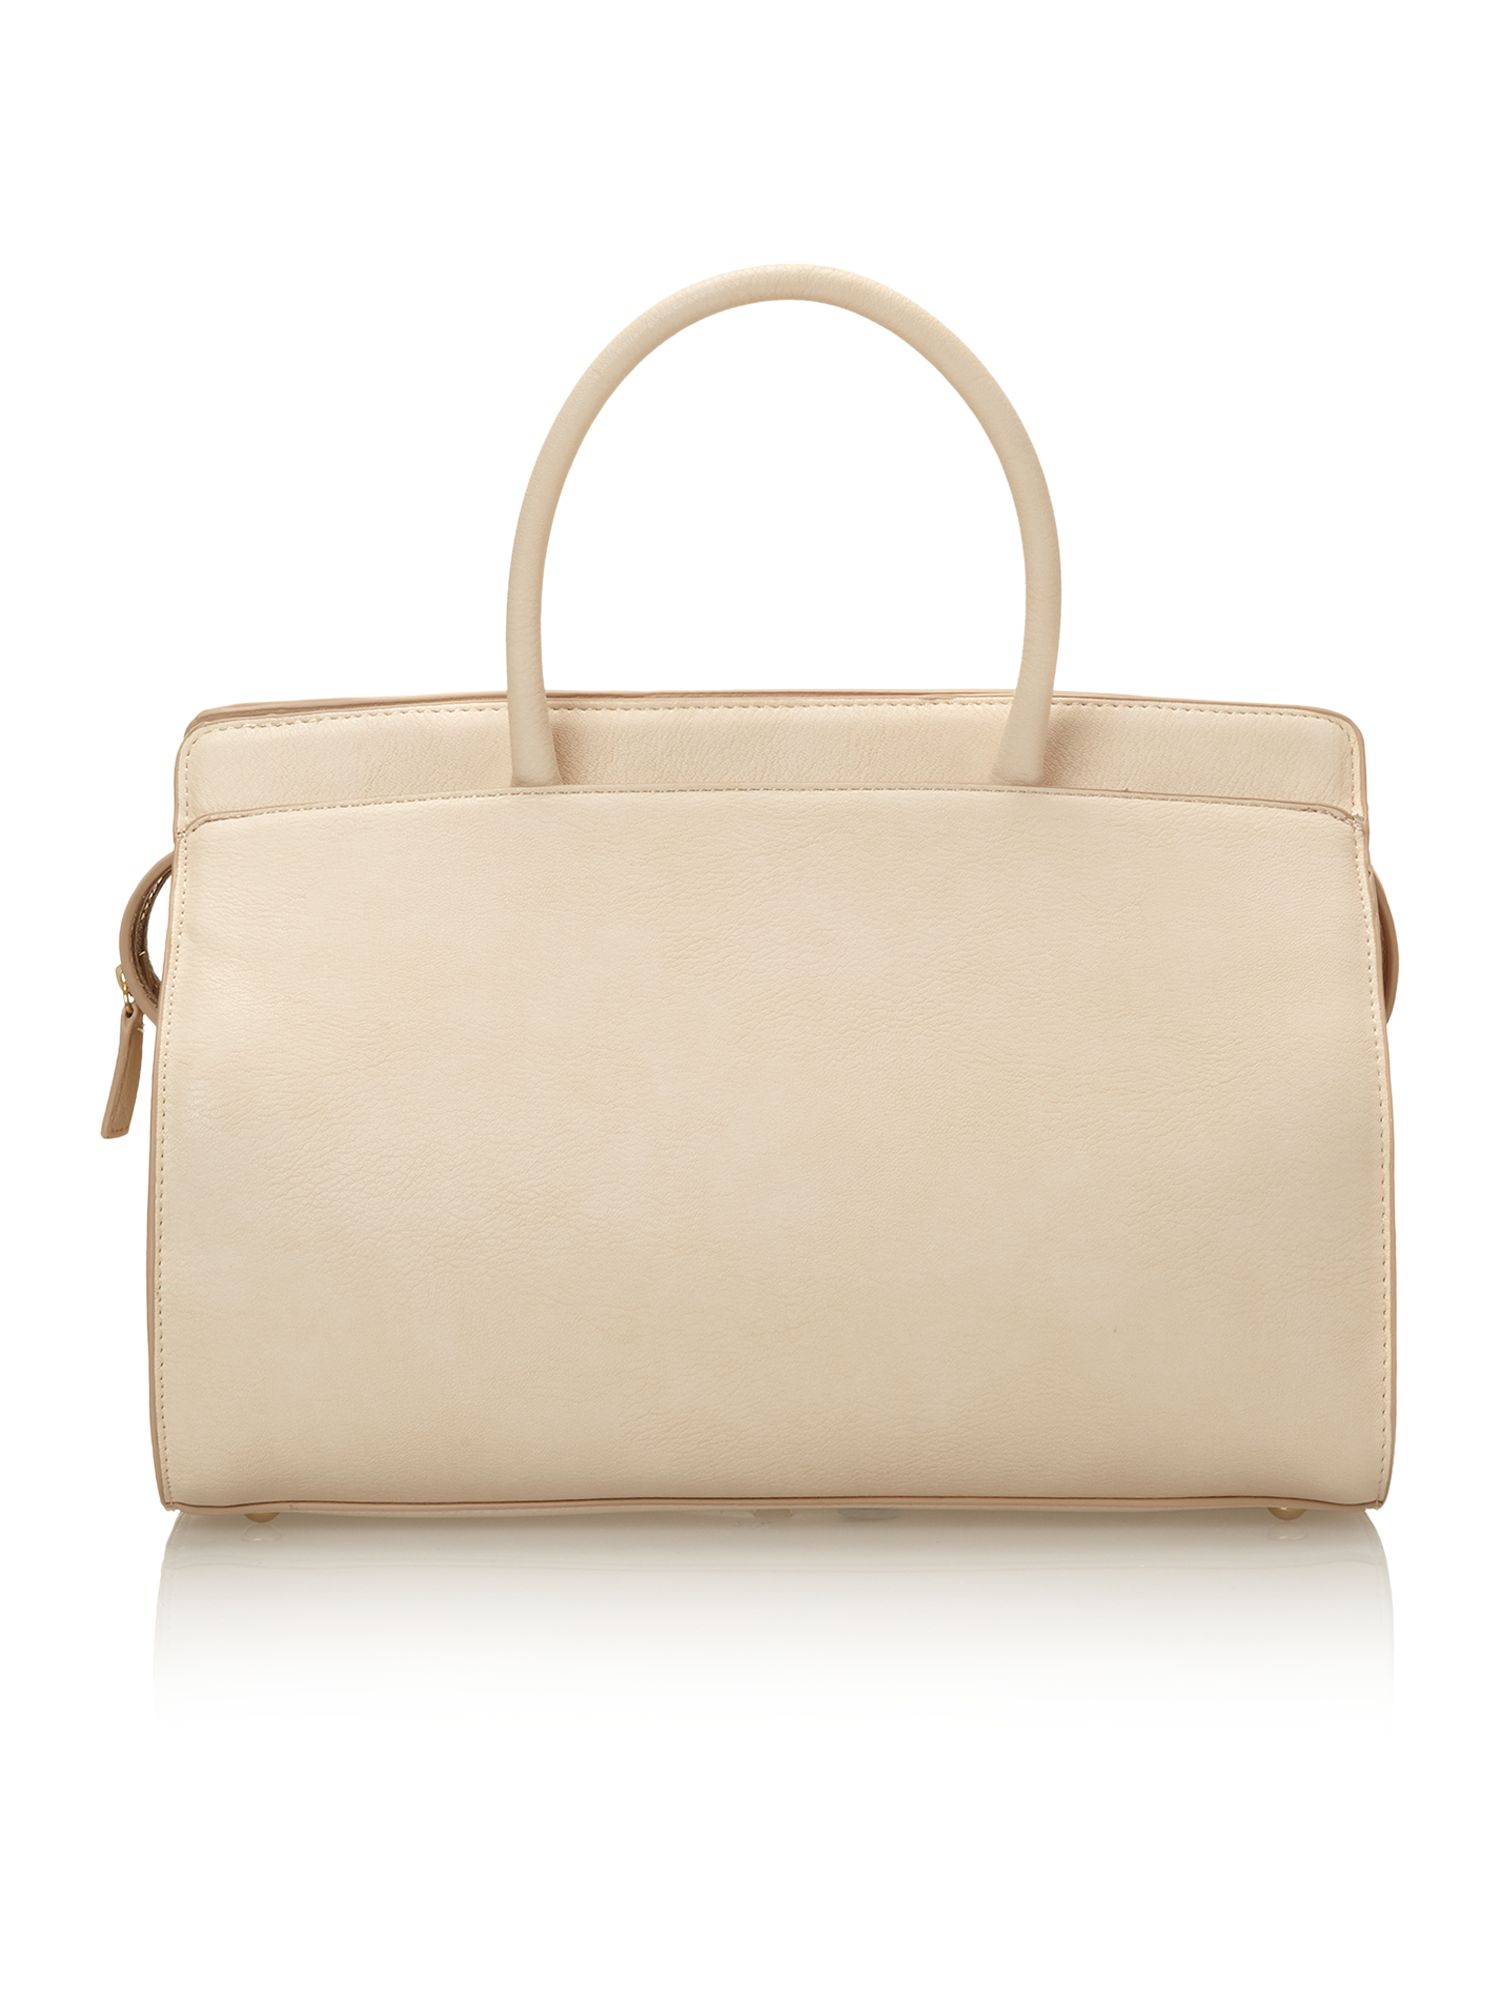 Bailey neutral tote bag